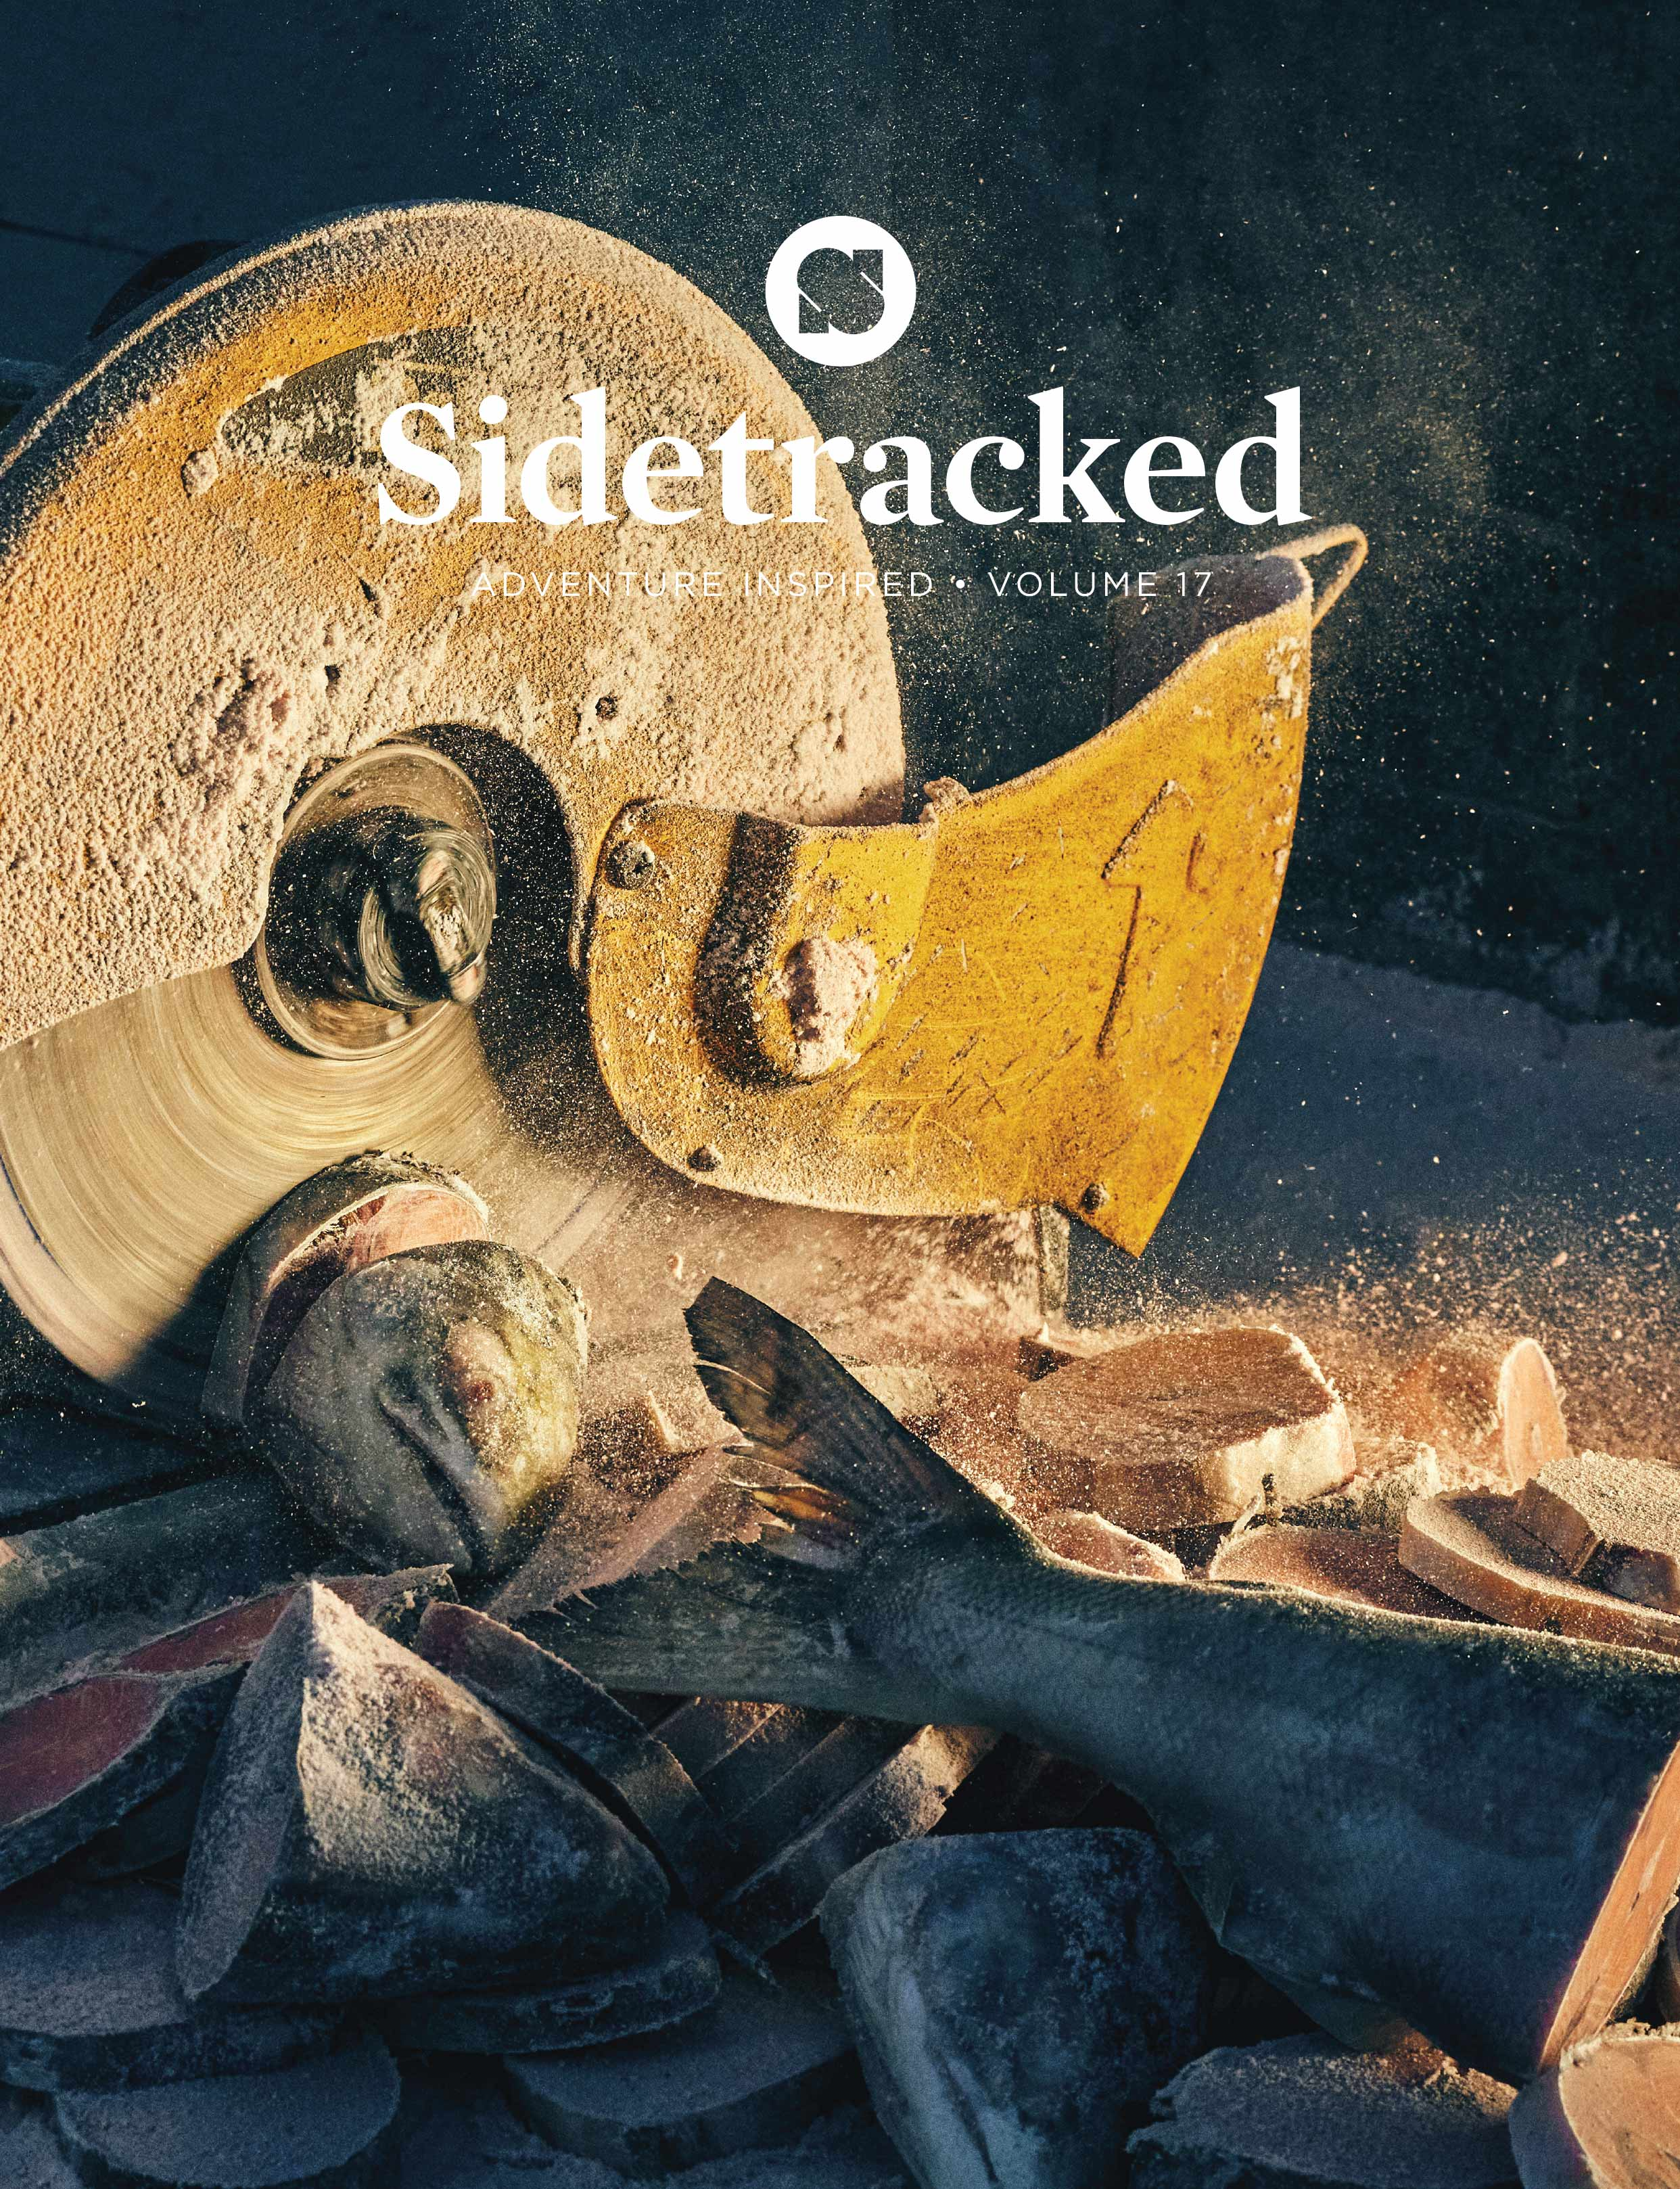 Sidetracked-Volume-17-Cover.indd